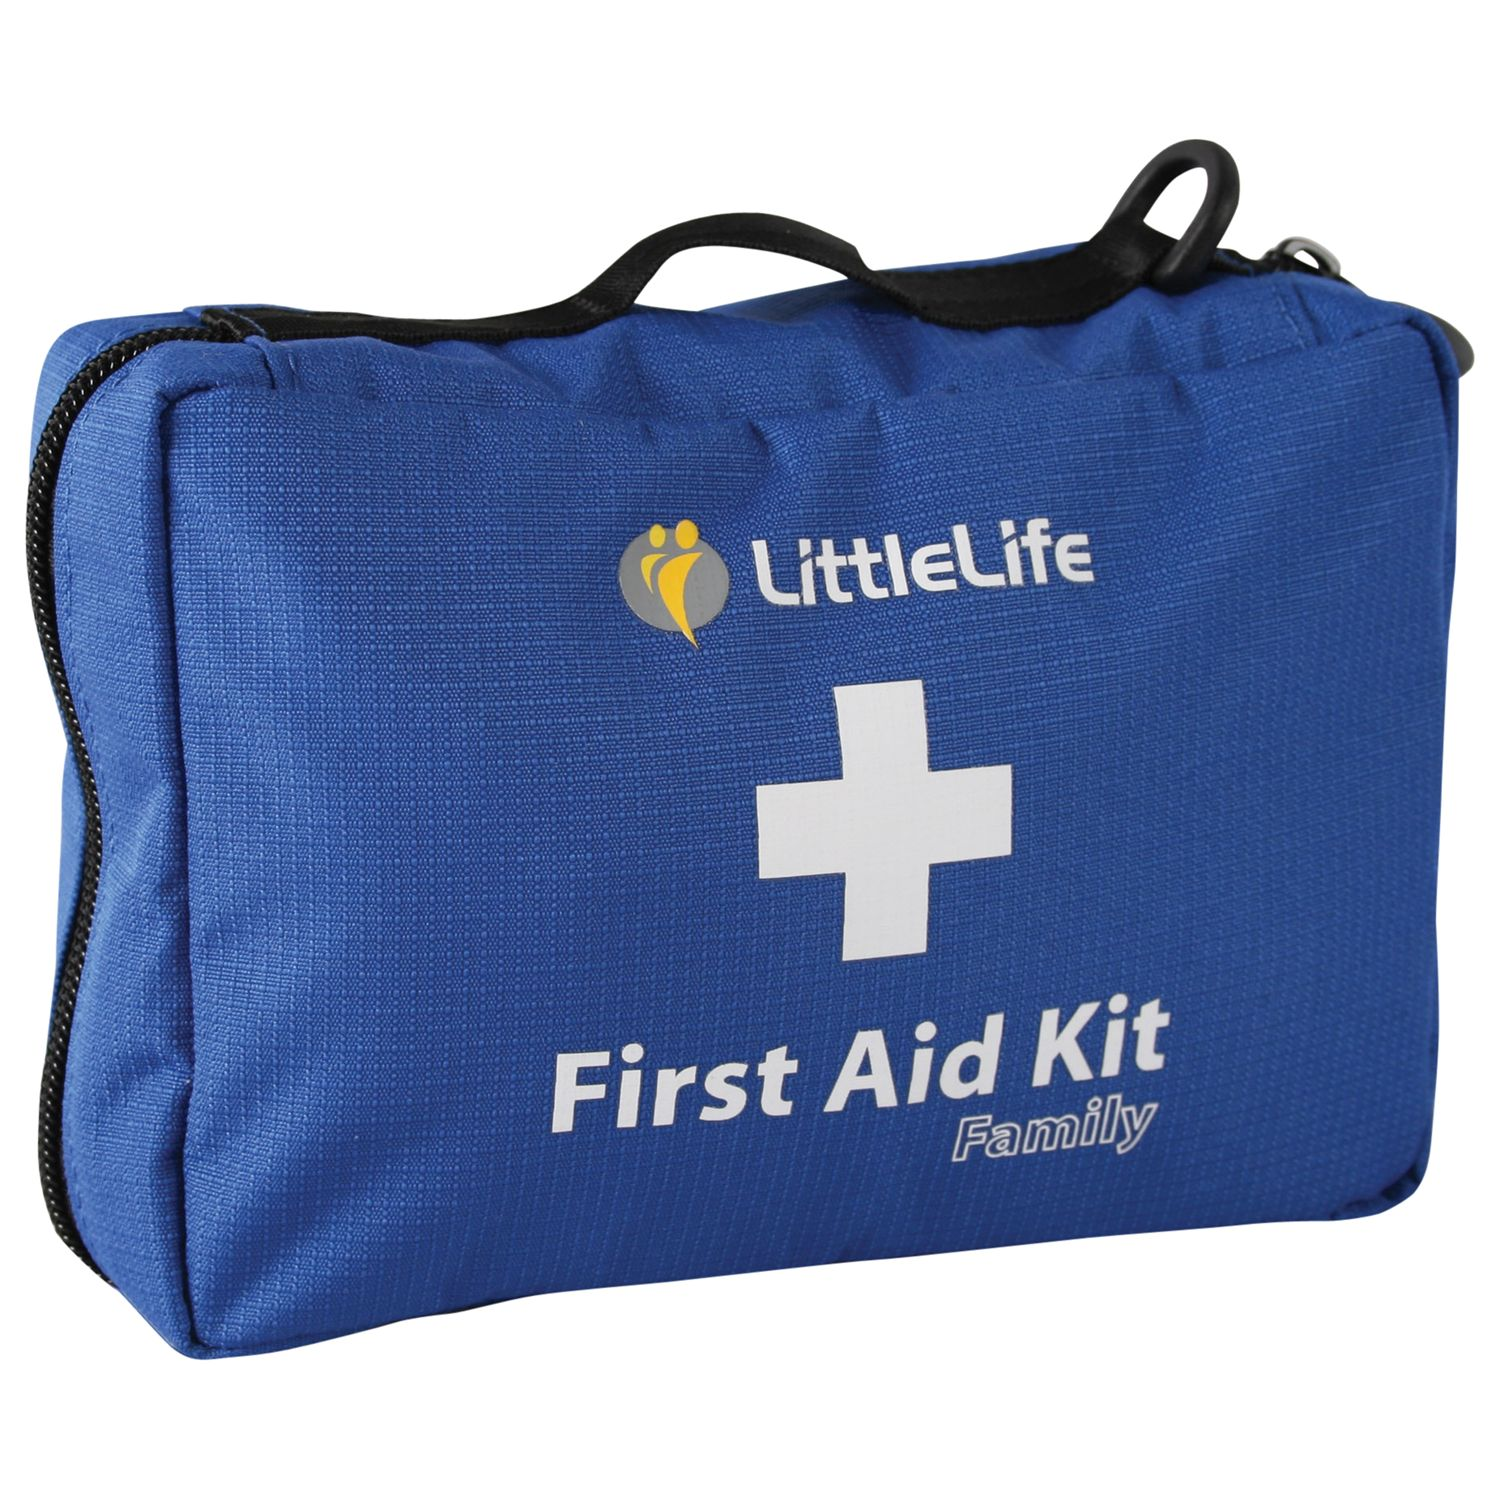 Littlelife LittleLife Family First Aid Kit